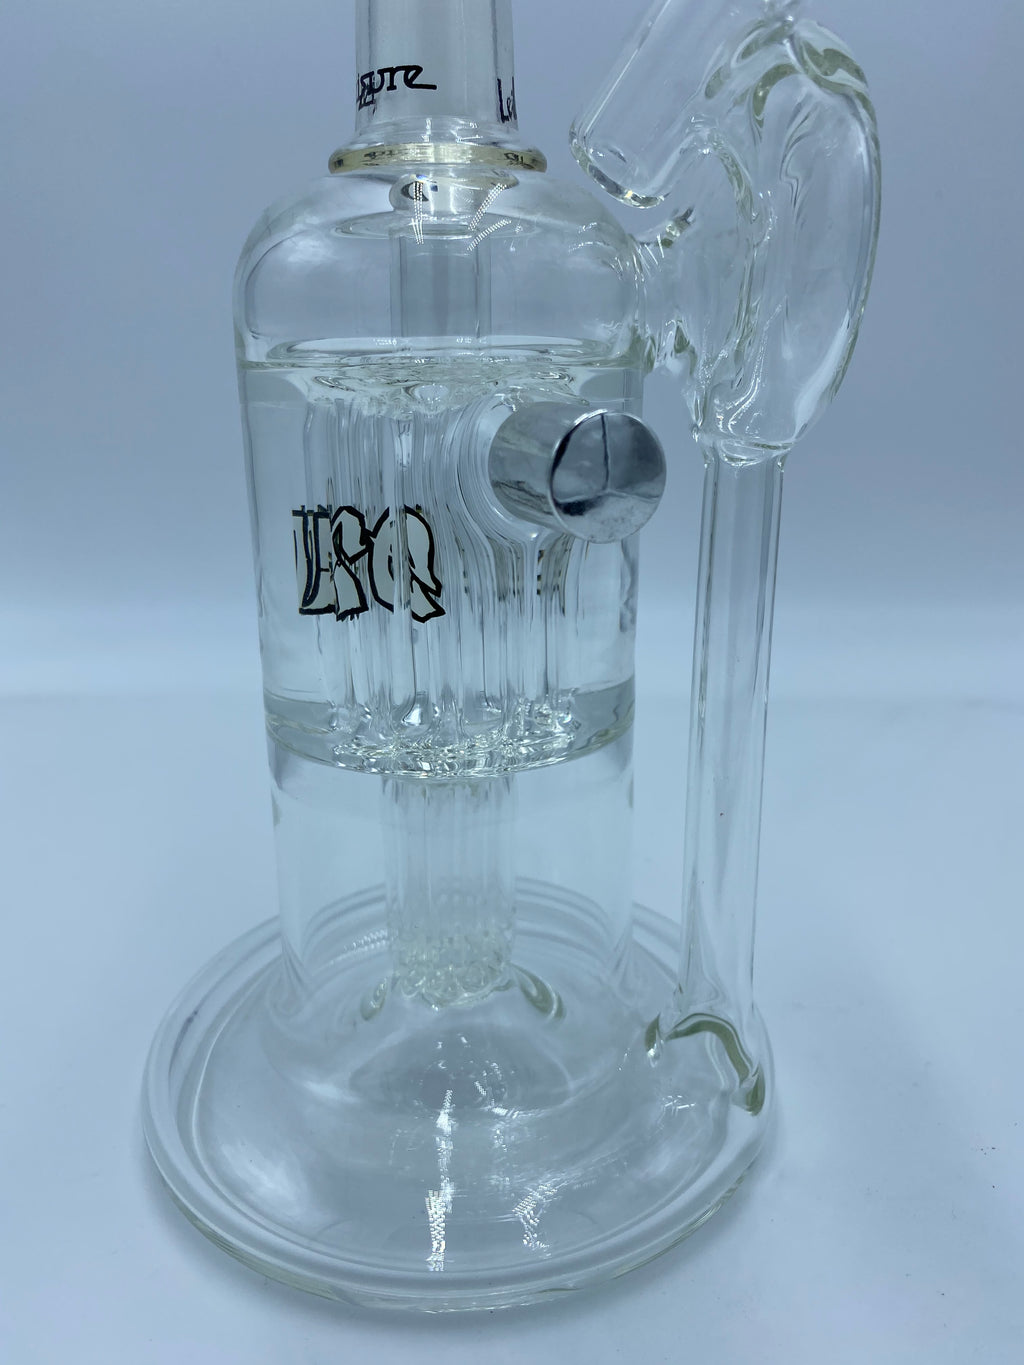 LEISURE GLASS FREEZABLE COIL RIG - Smoke Country - Land of the artistic glass blown bongs